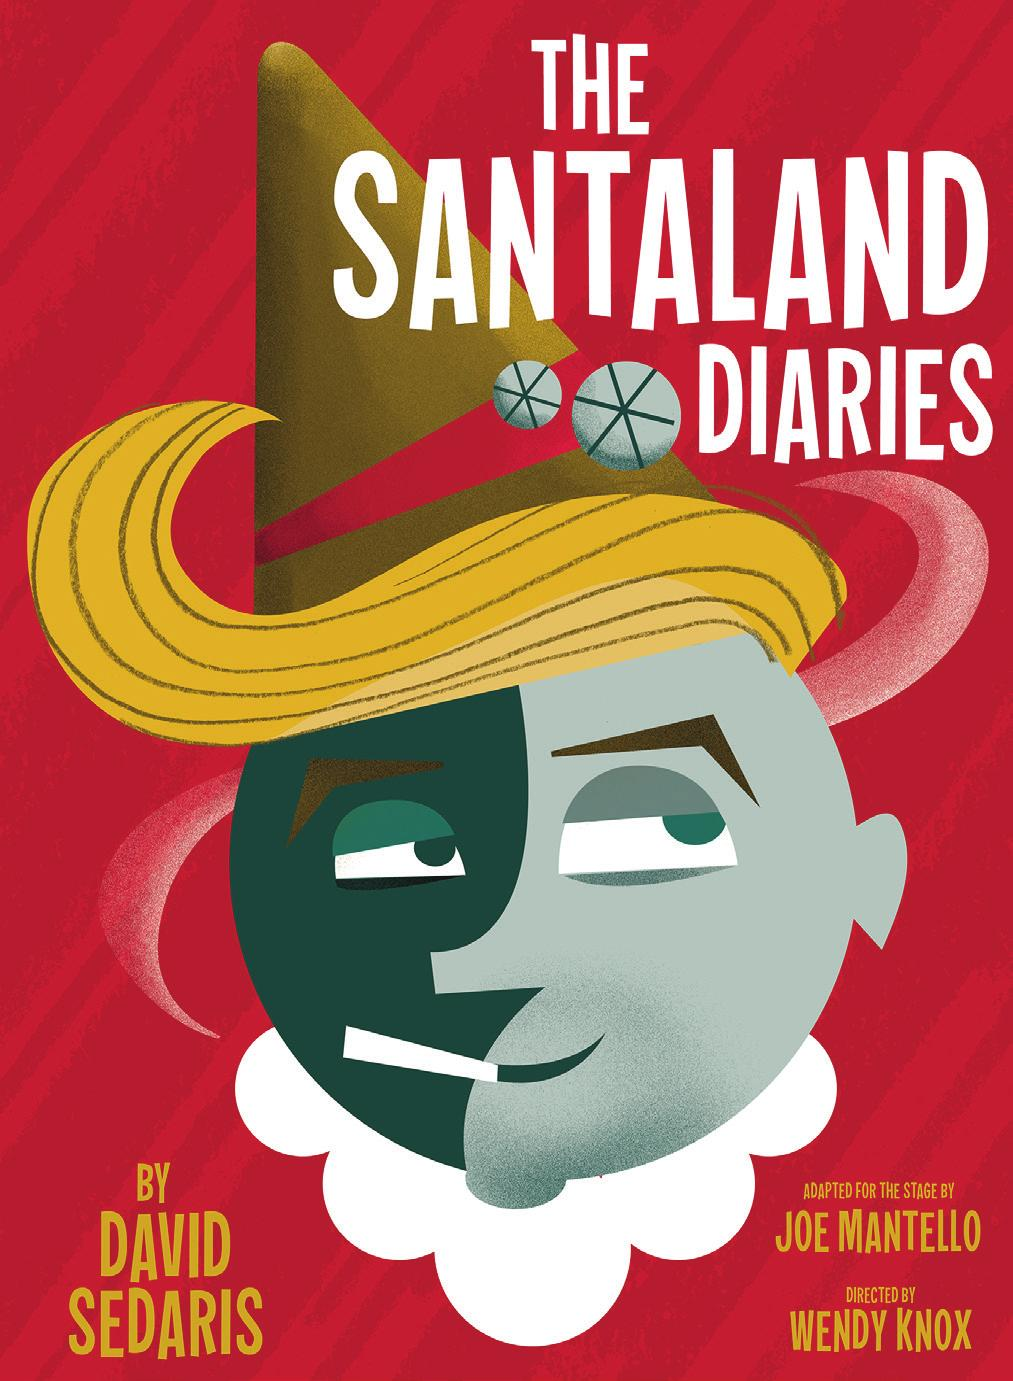 The Guide A Theatergoer s Resource The Santaland Diaries By David Sedaris Education & Community Programs Staff Kelsey Tyler Education & Community Programs Director Clara-Liis Hillier Education